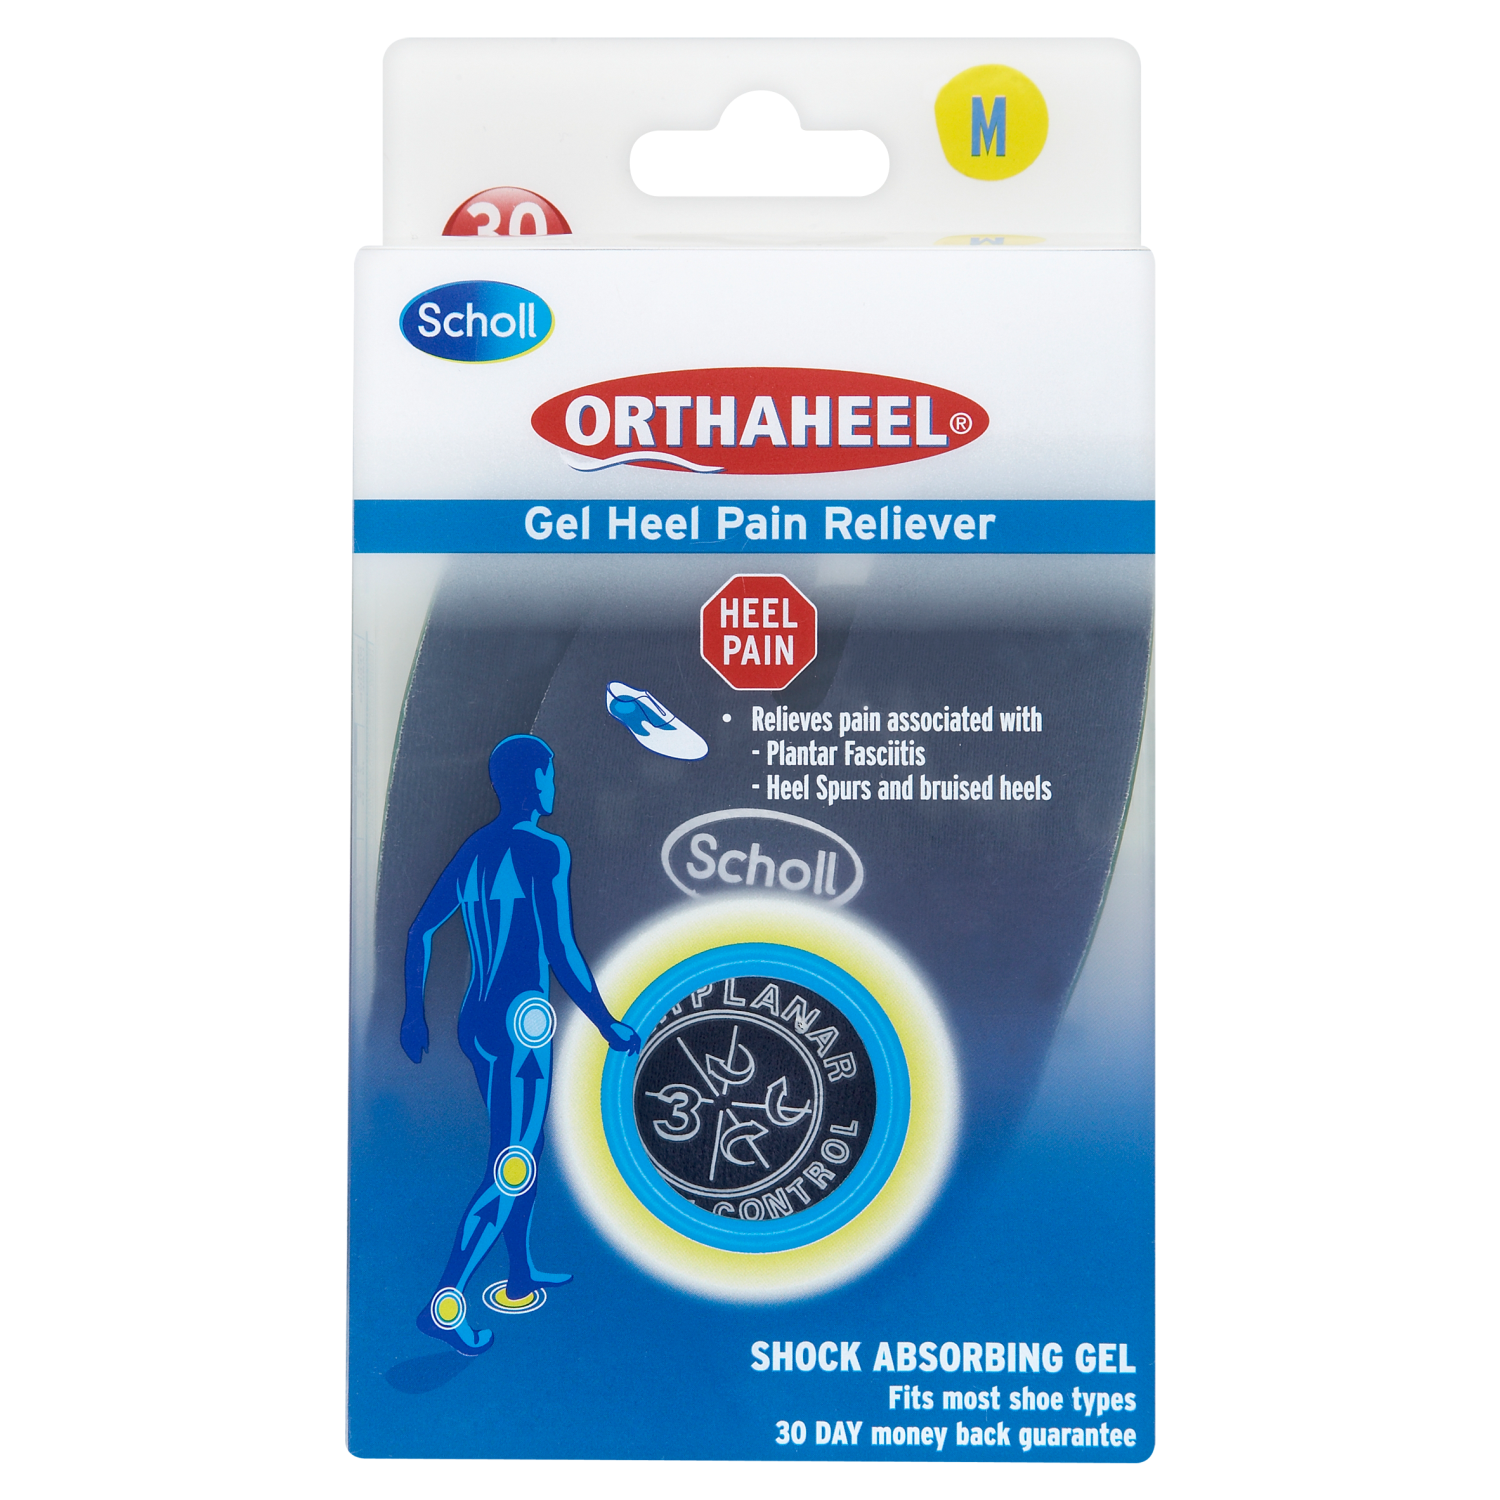 Scholl Biomechanics Orthaheel® Gel Heel Pain Reliever